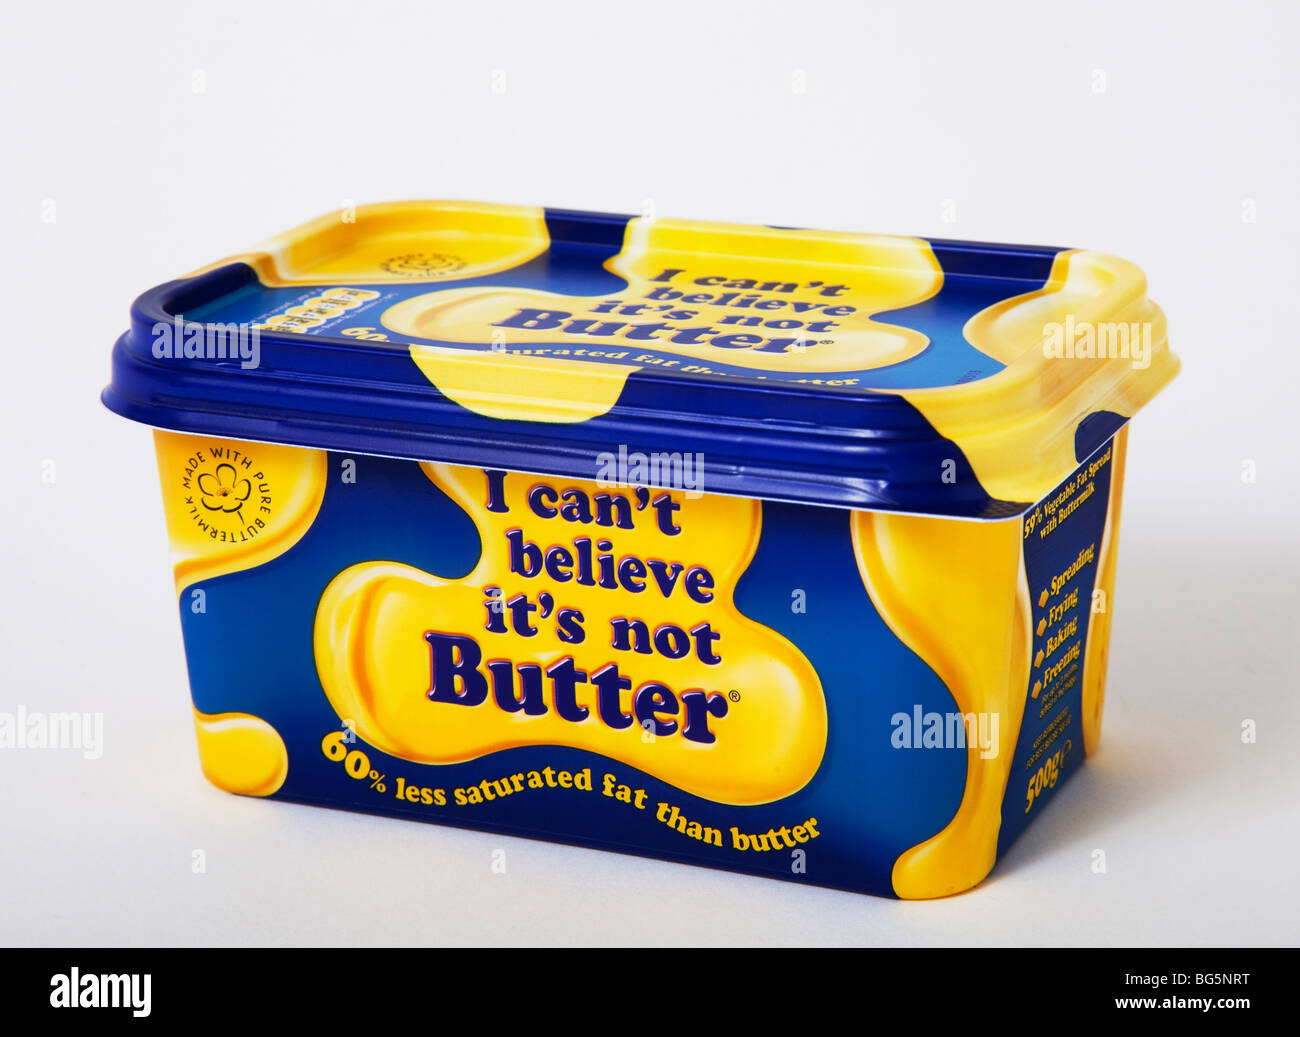 'I can't believe its not butter' butter margarine - Stock Image